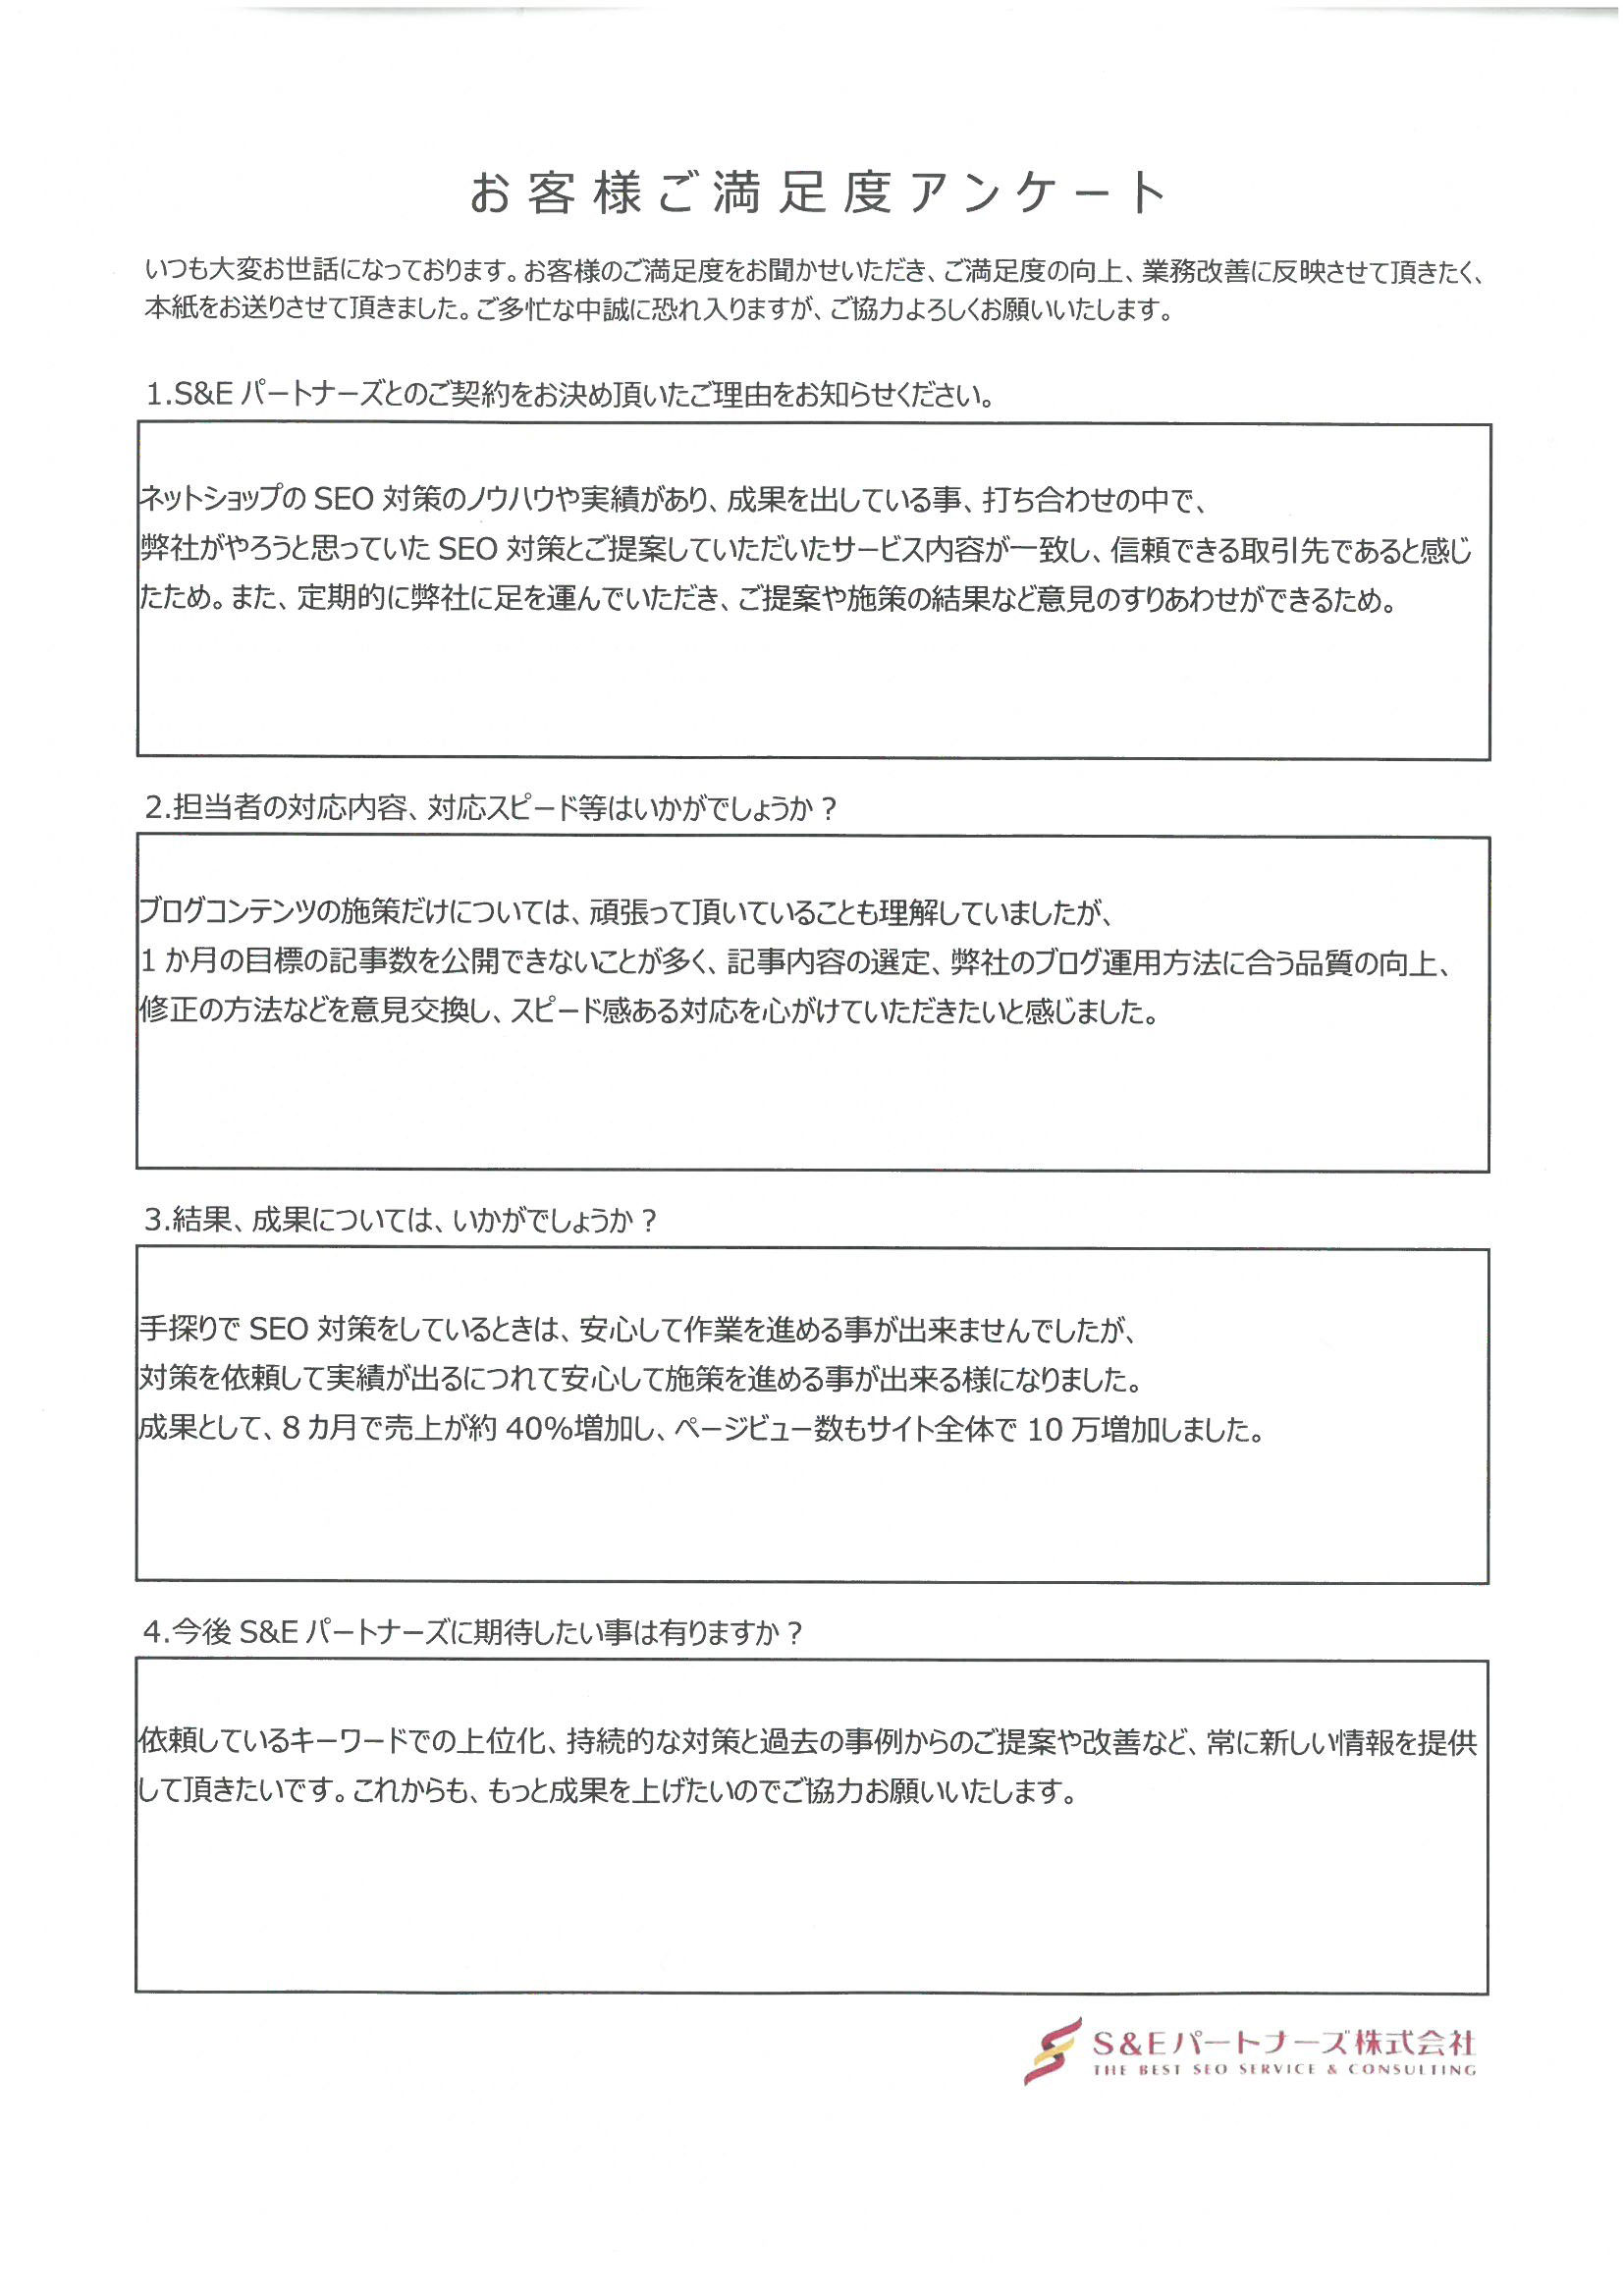 【SEO対策】住設設備の通販サイトを運営されているお客様